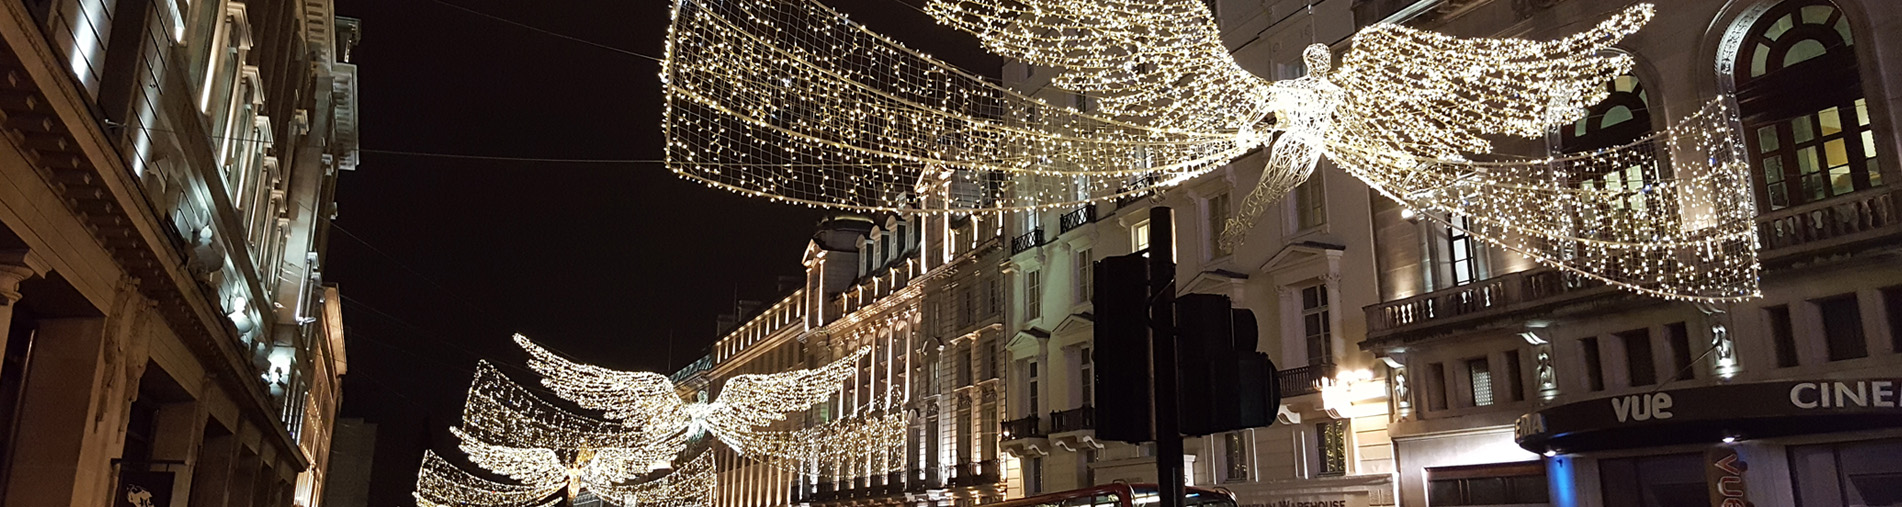 London's Regent Street Christmas Lights